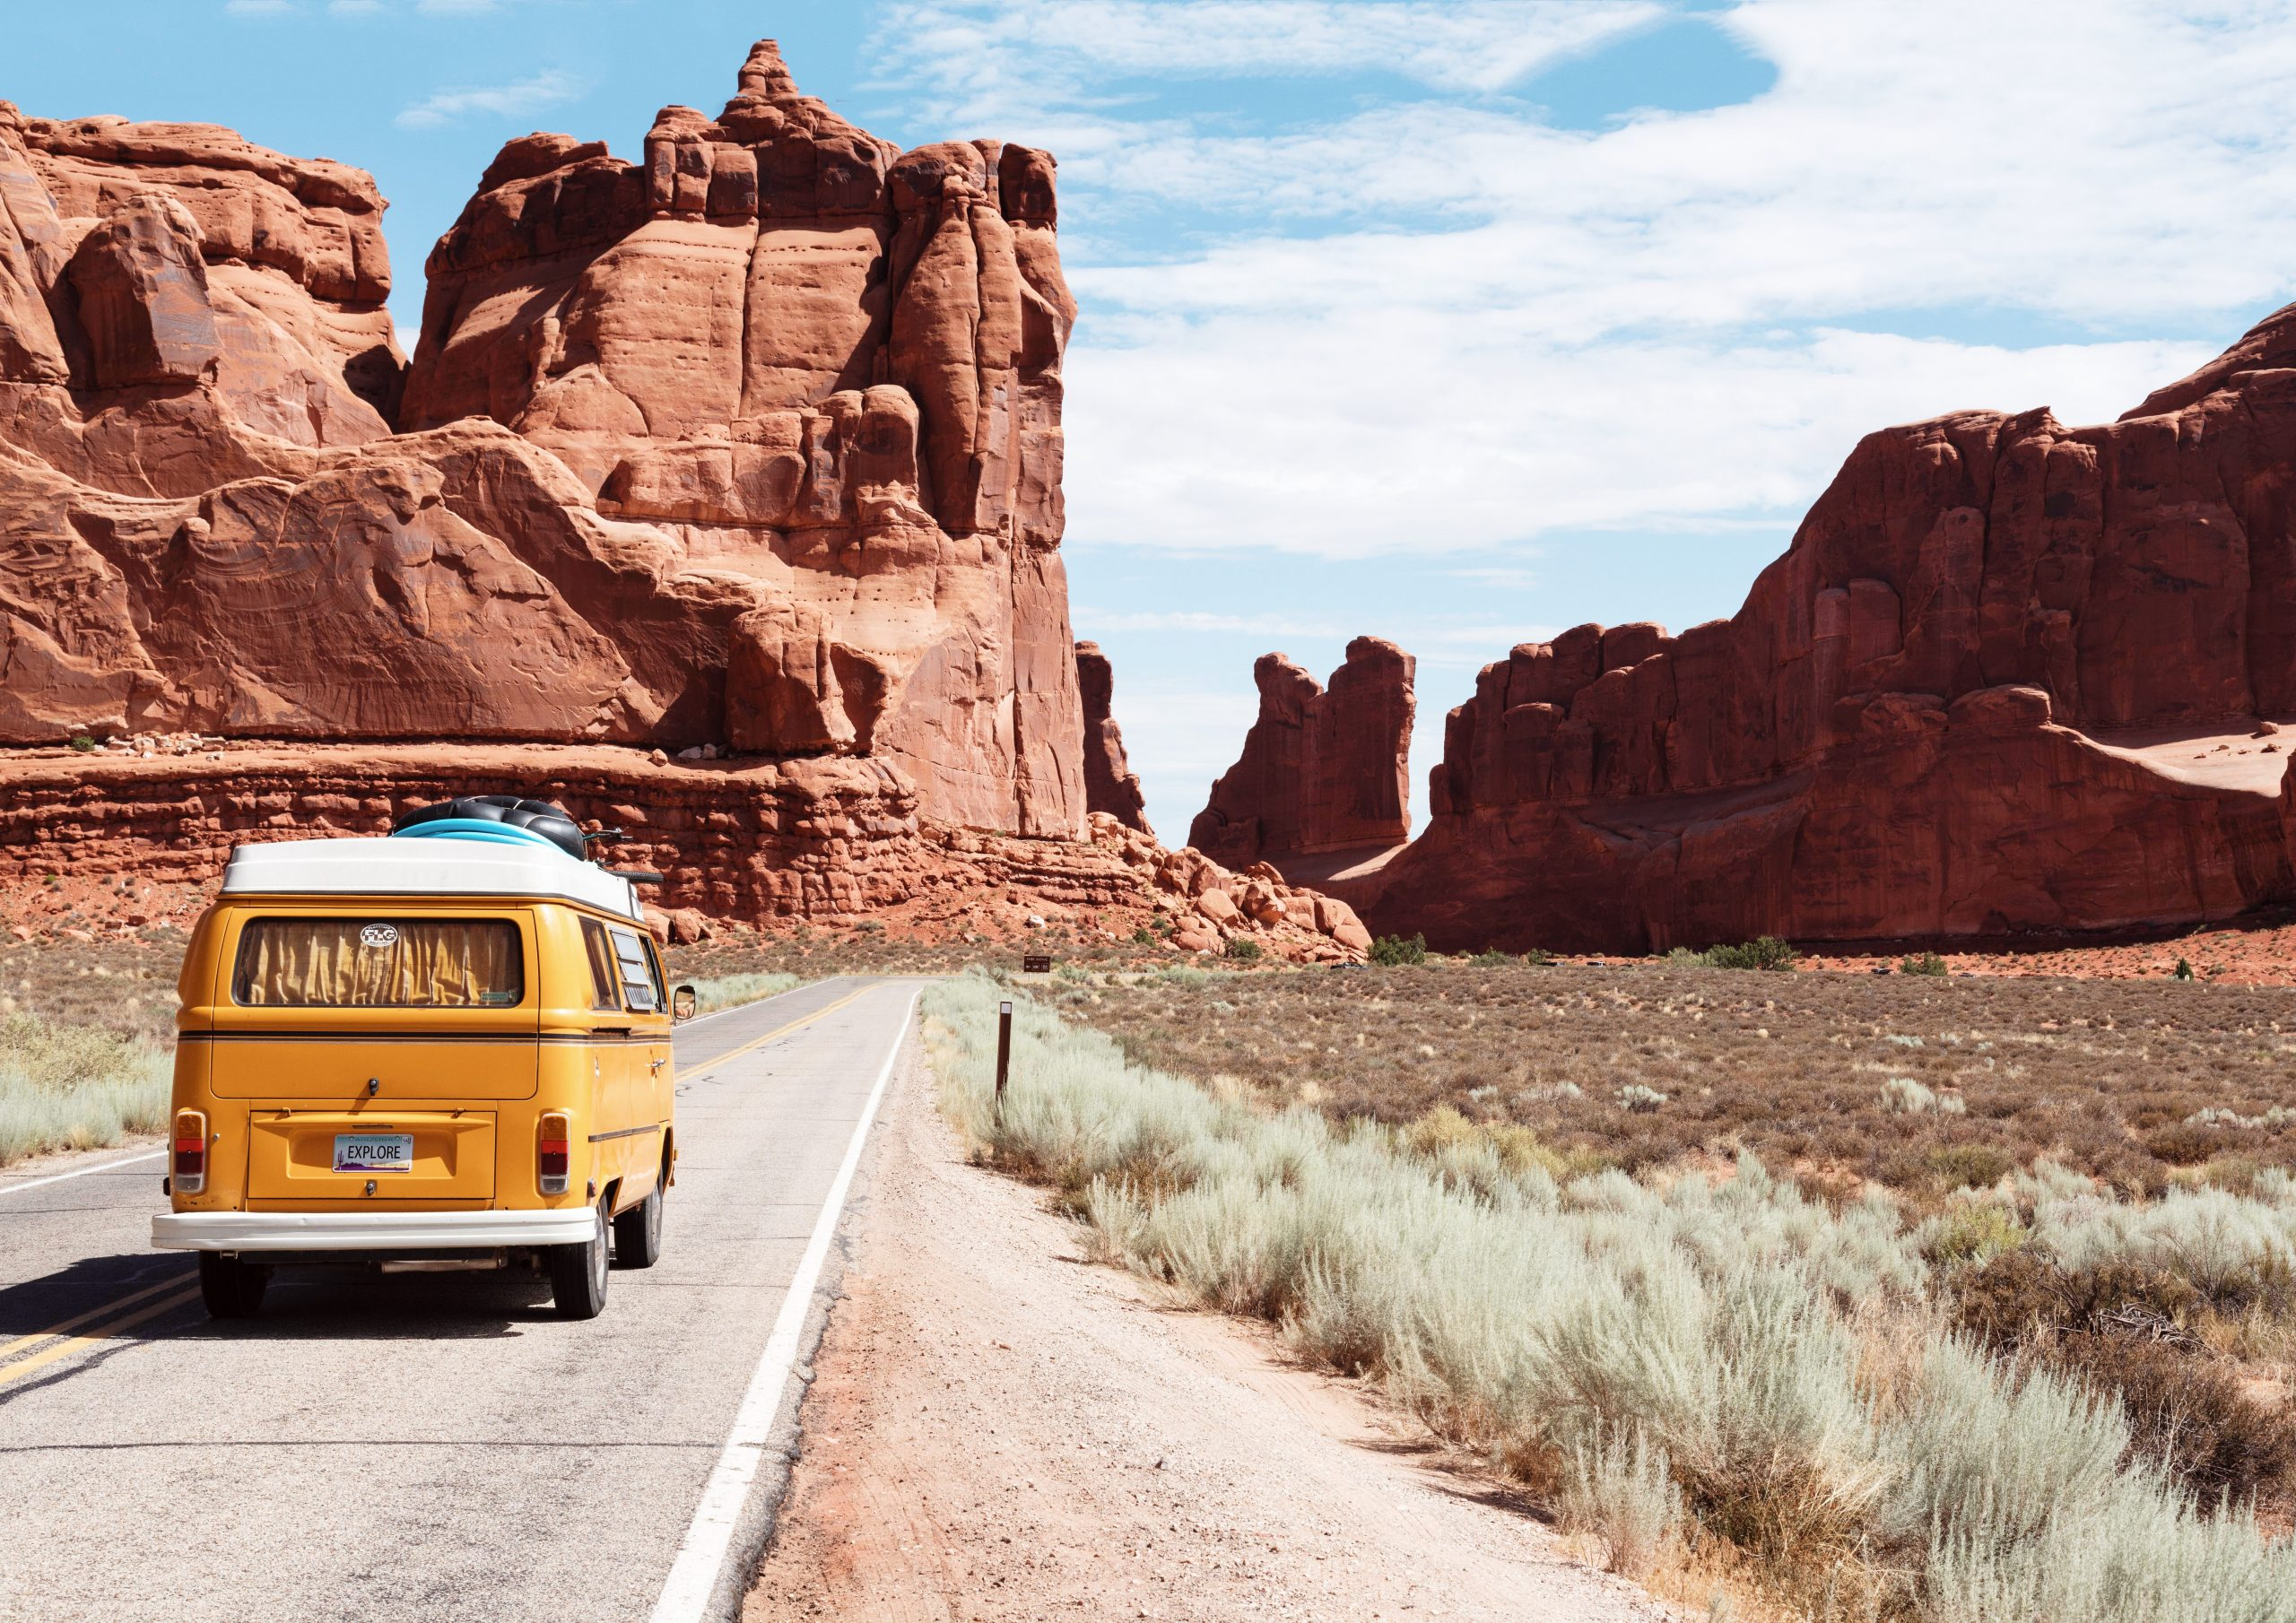 A yellow camper van on a highway drives toward the grand canyon, in a retro vibe photo.